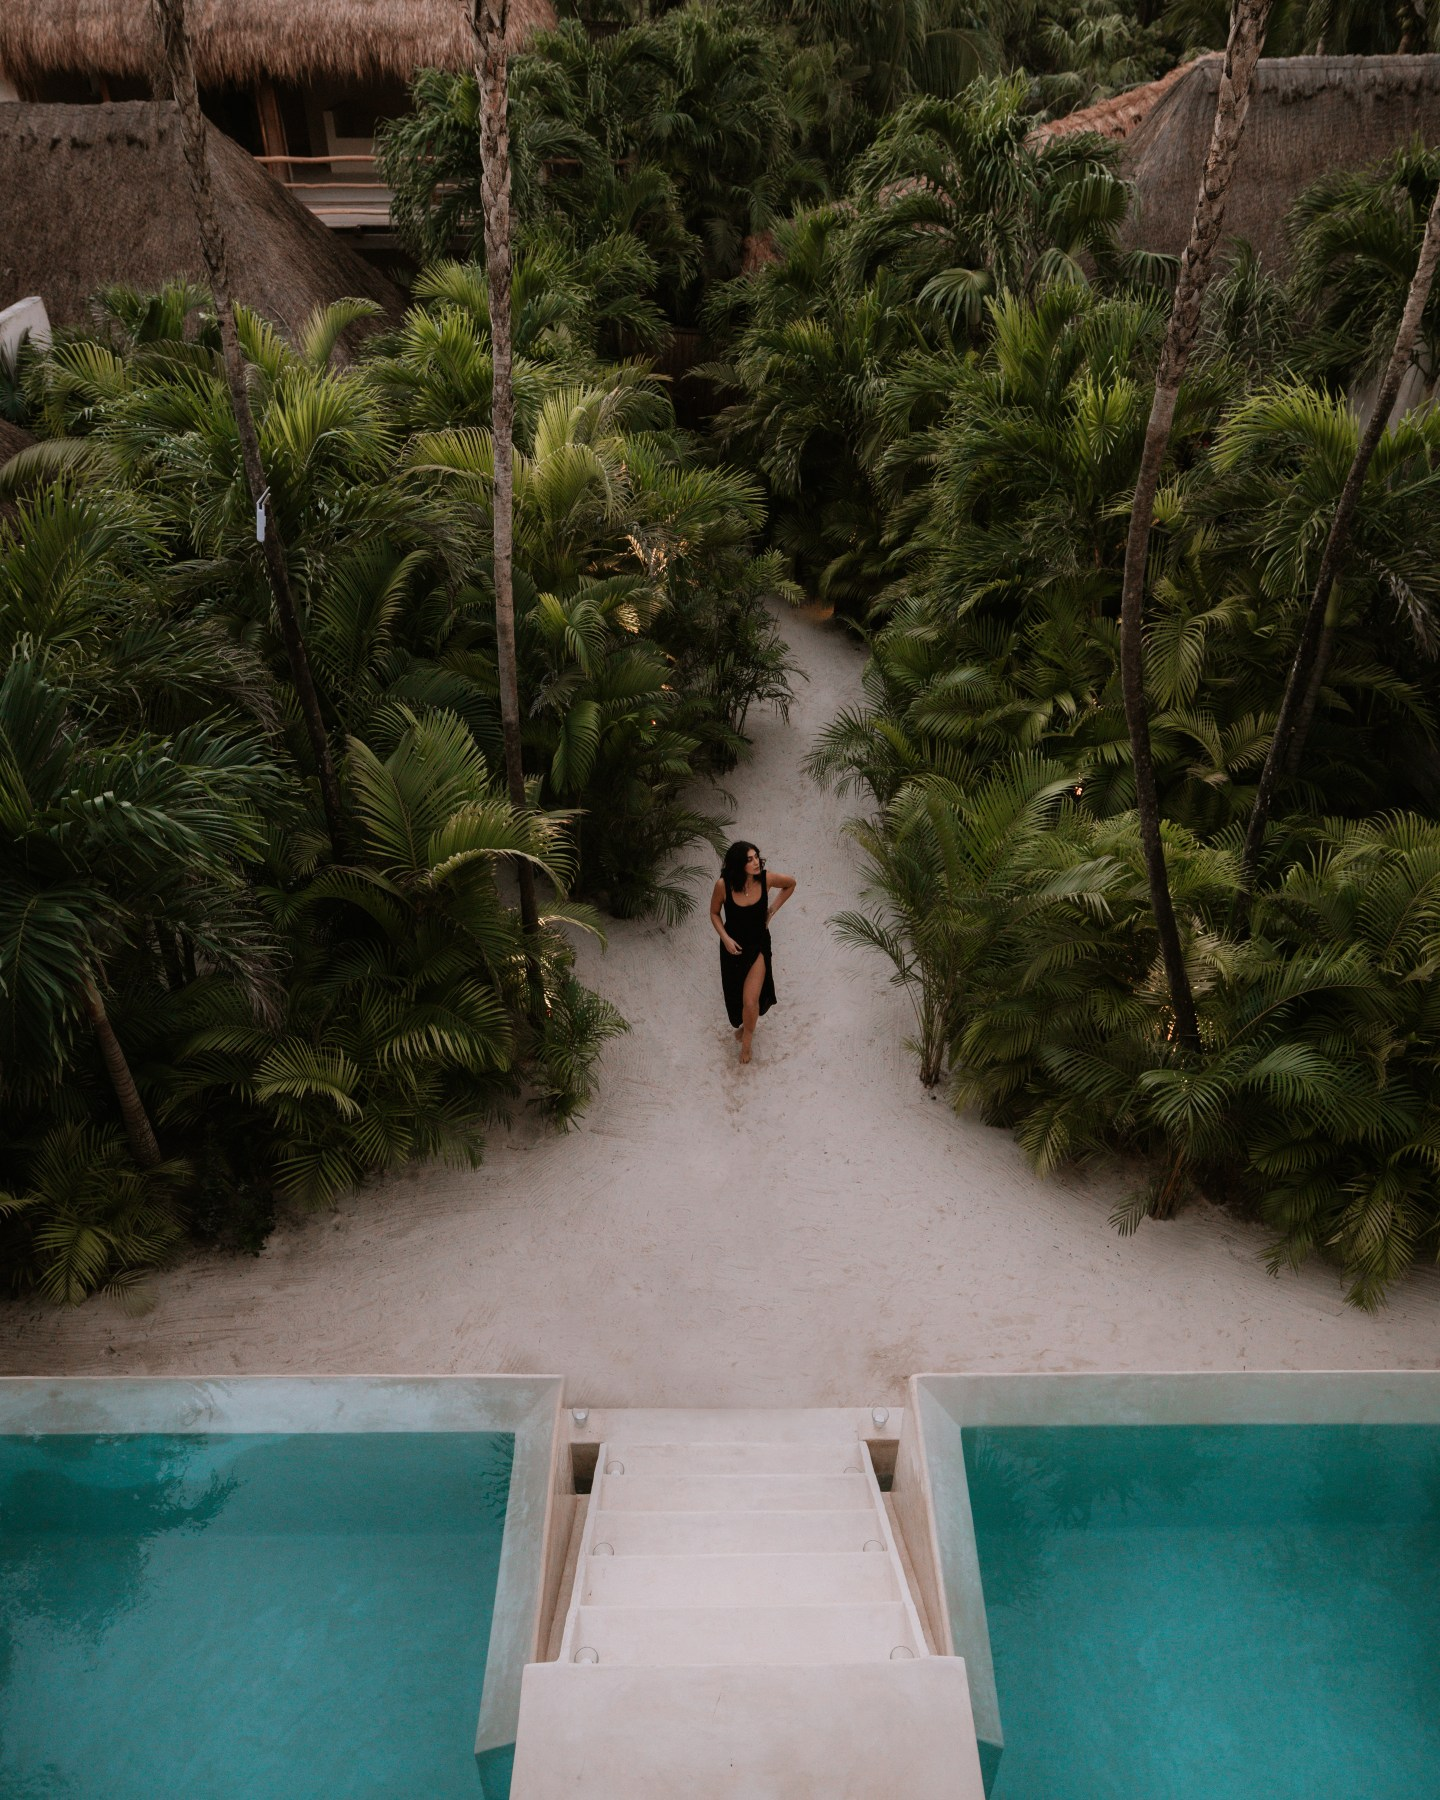 Girl walking in the palm tree path that leads to the pool at La Valise in Tulum Mexico